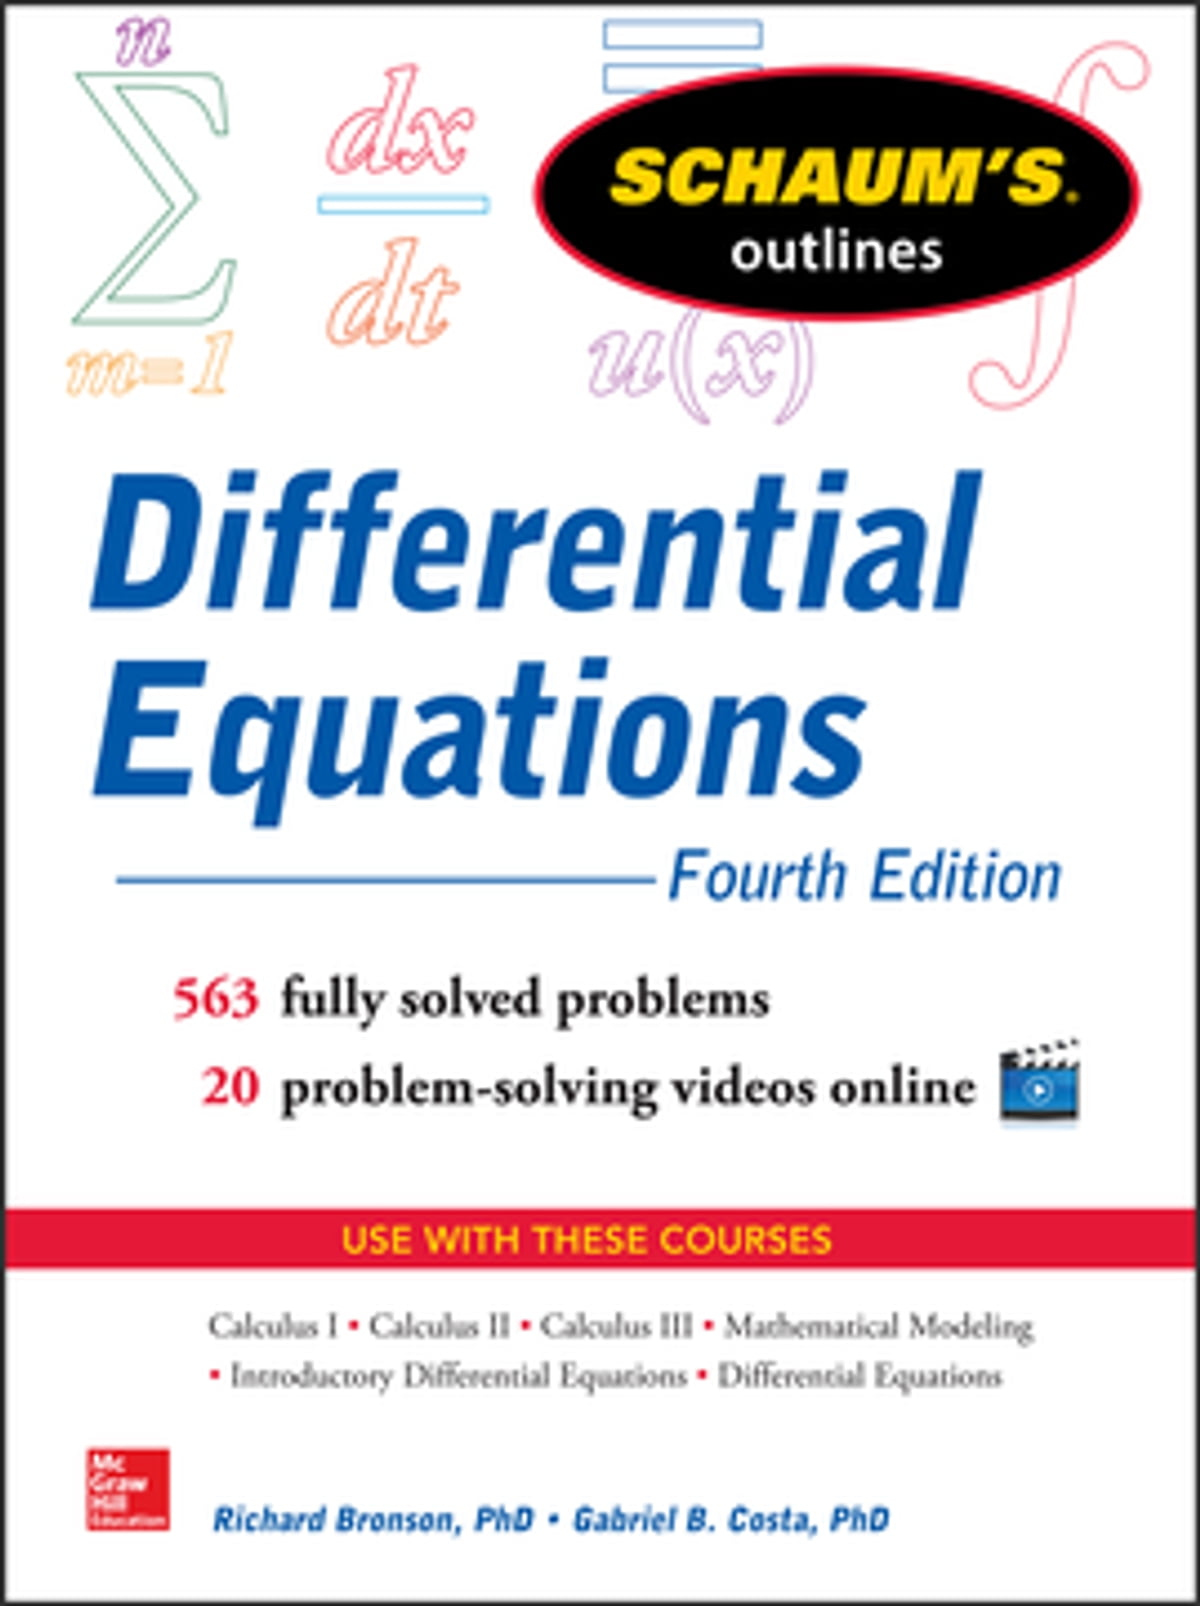 Schaum's Outline of Differential Equations, 4th Edition ebook by Richard  Bronson - Rakuten Kobo